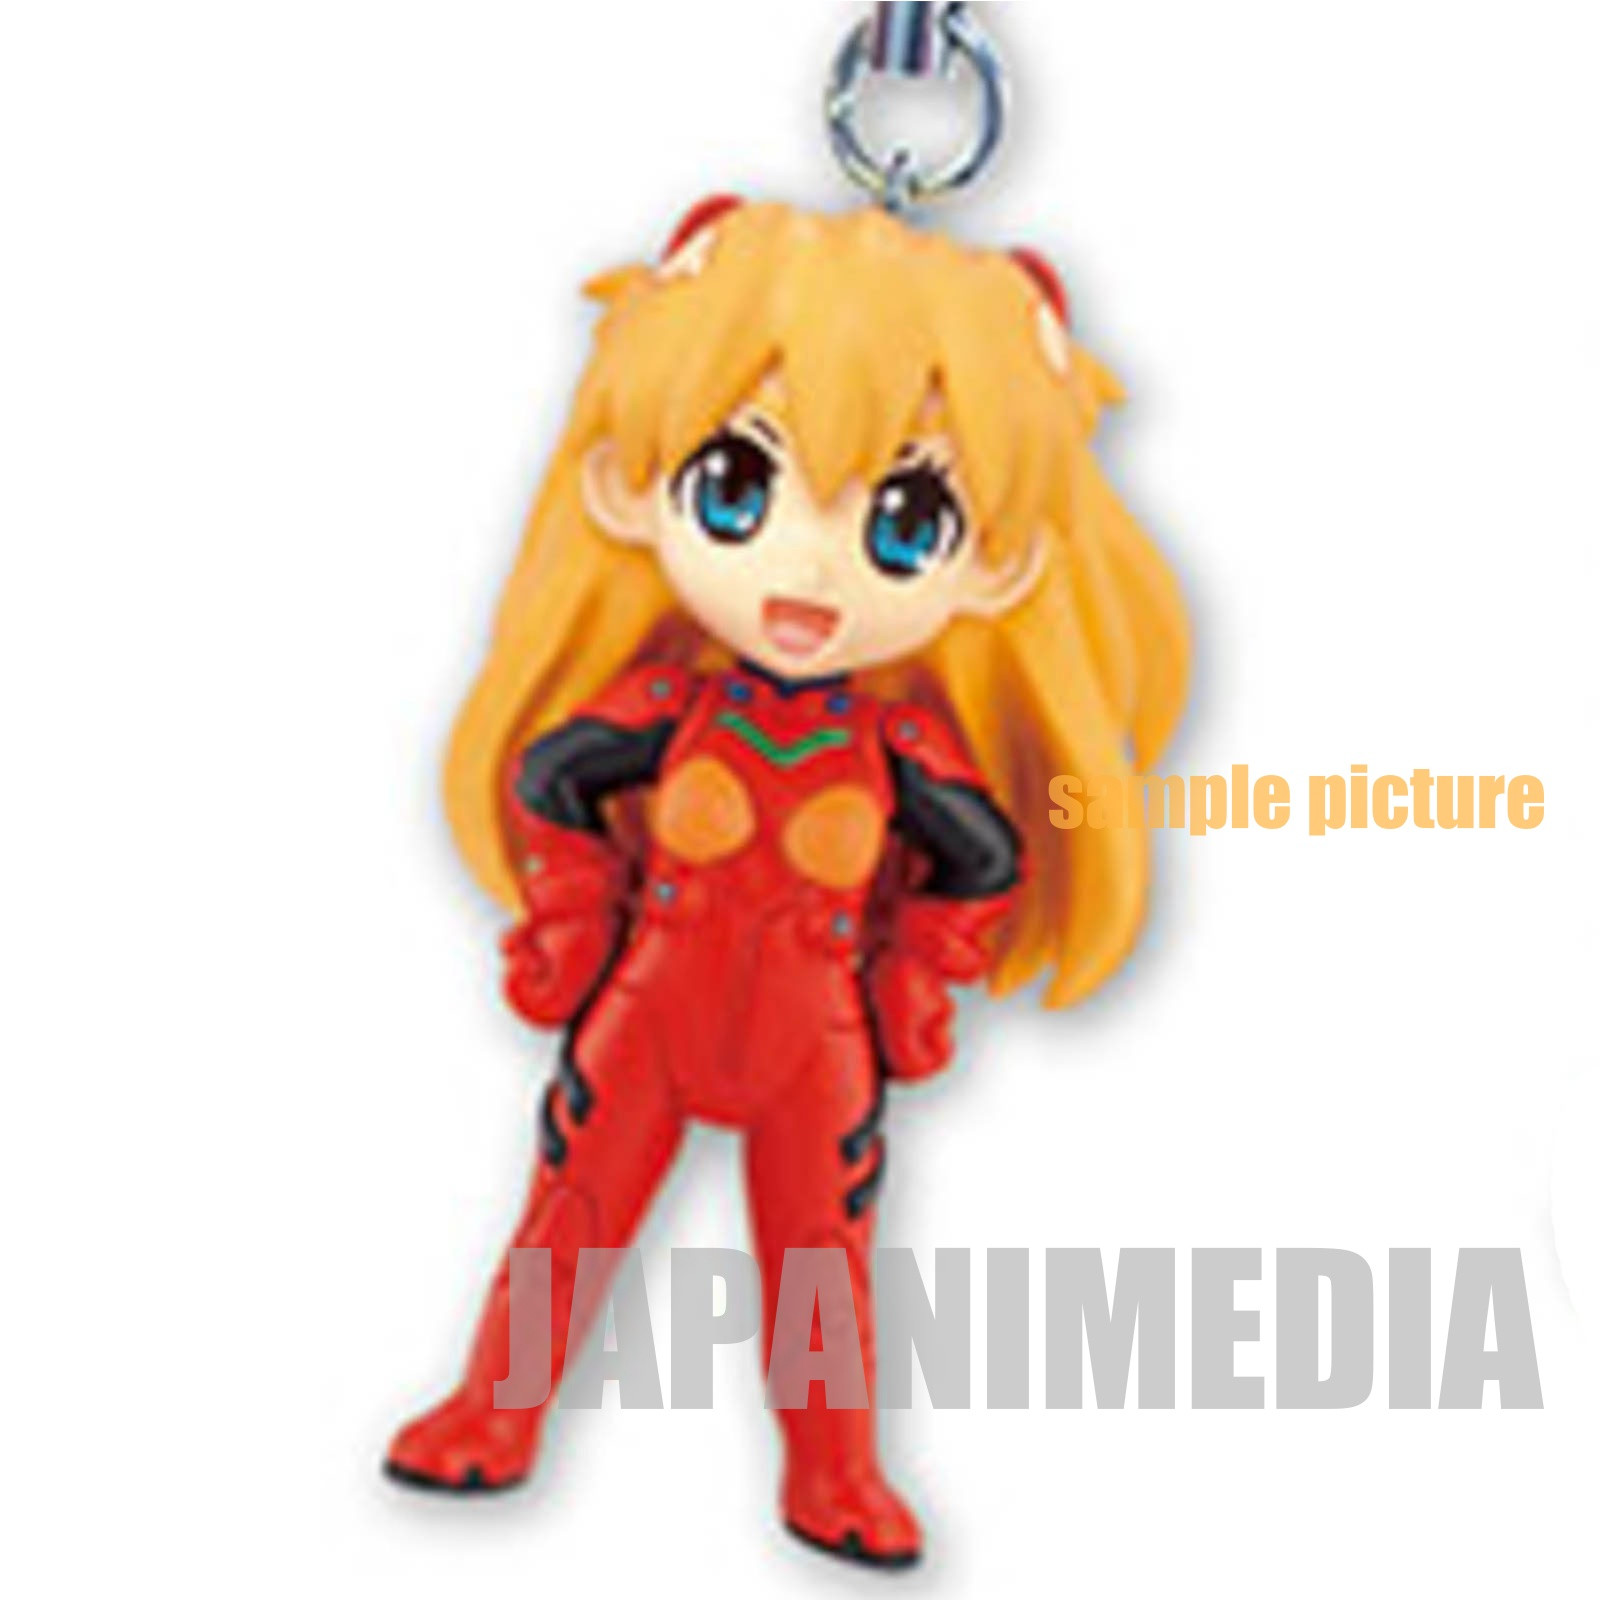 Evangelion Asuka Langley Petit EVA Mascot Mini Figure Strap ANIME JAPAN